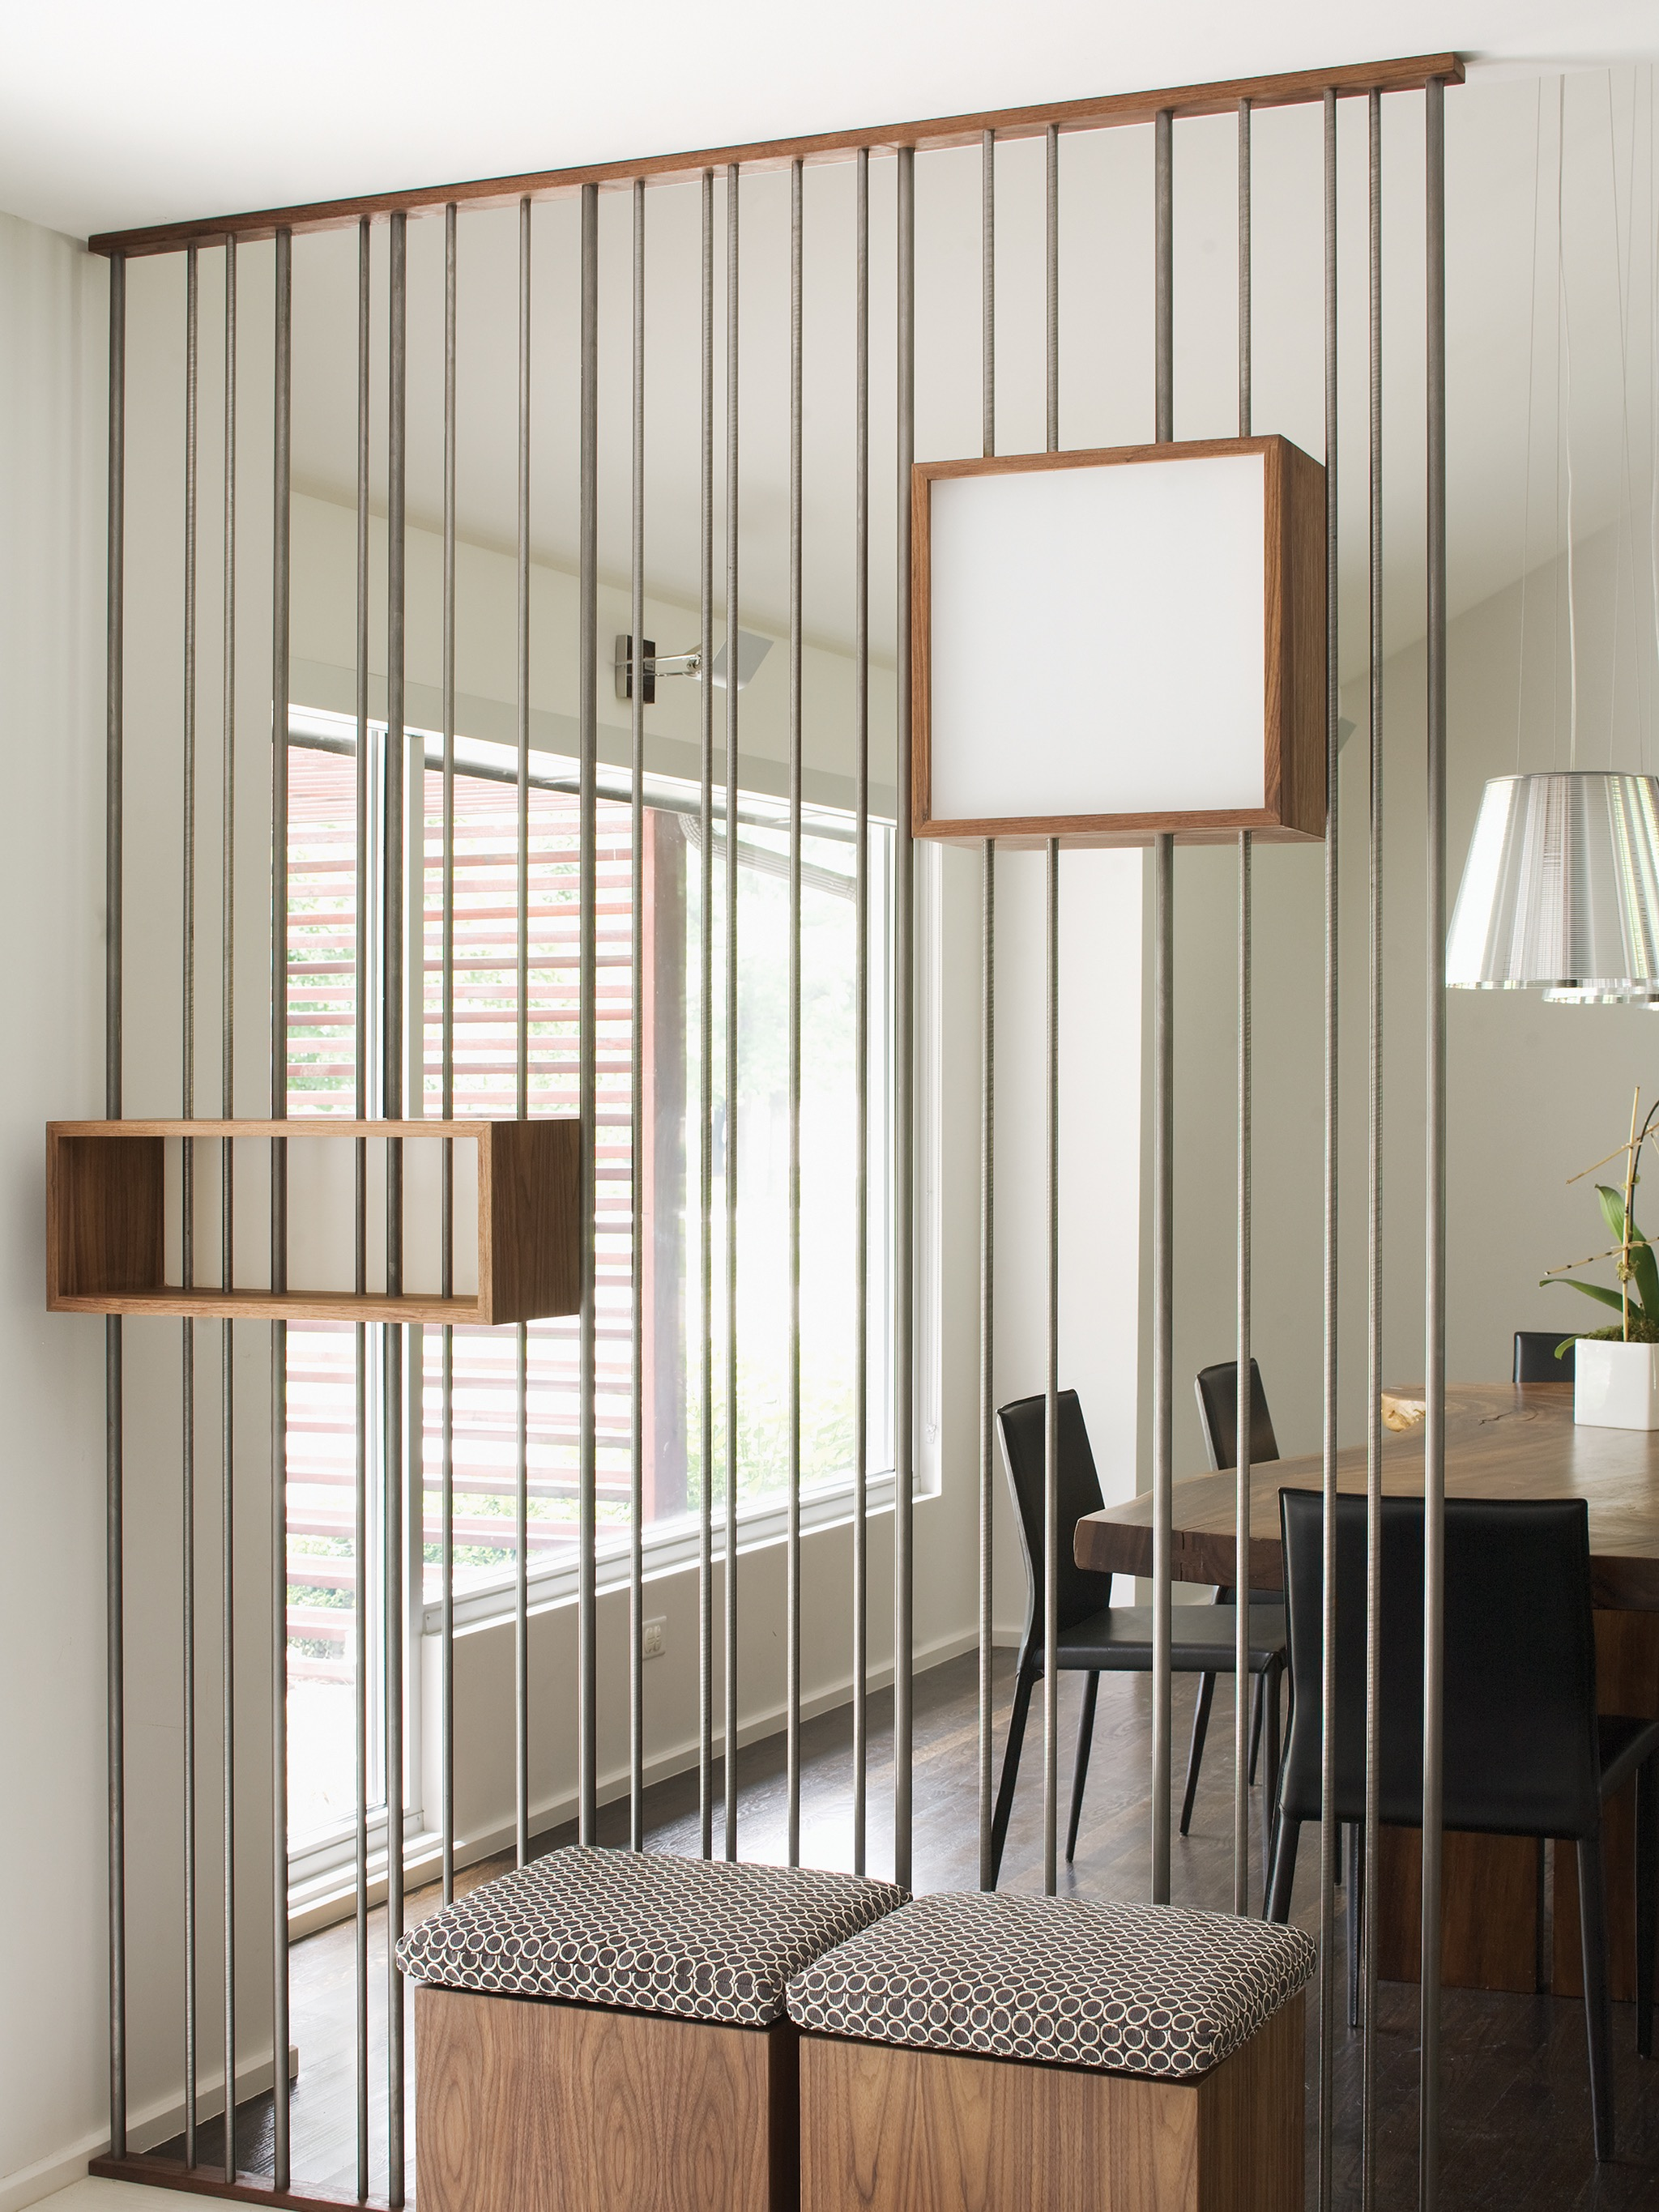 Contemporary Sculptural Modern Room Divider With Small Storage (Image 2 of 14)